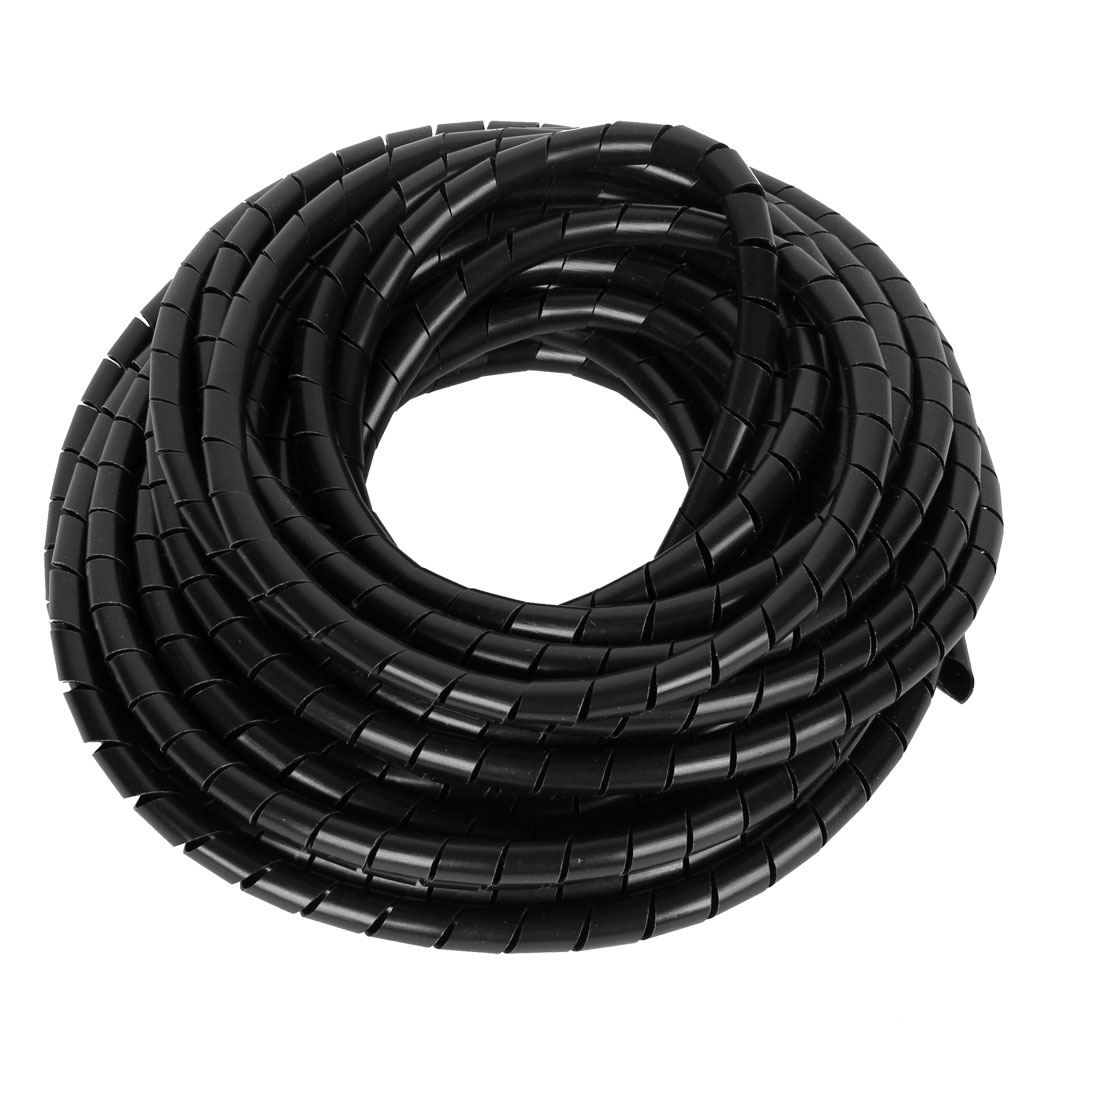 3pcs 8mm Dia 34.5Ft 10.5m Long Flexible Spiral Tube Wrap Lead Cable Organizer Management Black